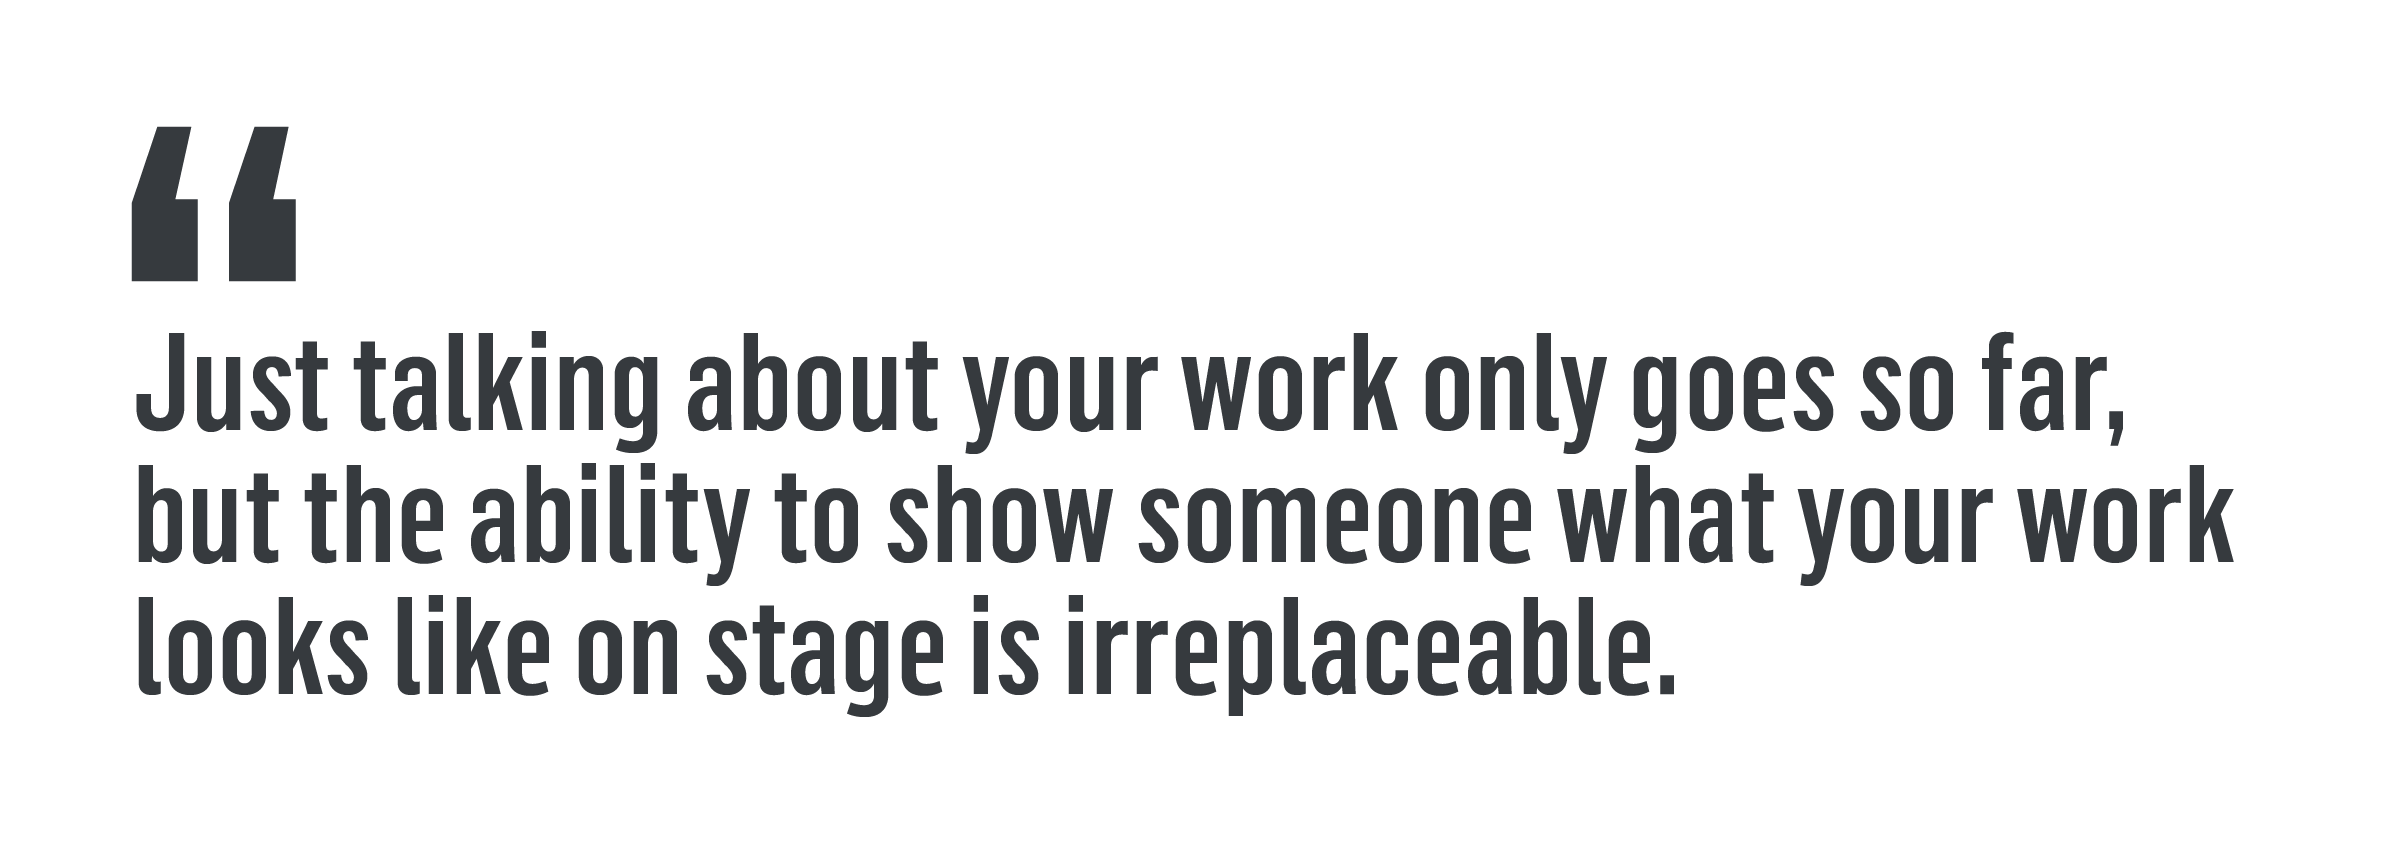 """Just talking about your work only goes so far, but the ability to show someone what you work looks like on stage is irreplaceable."""